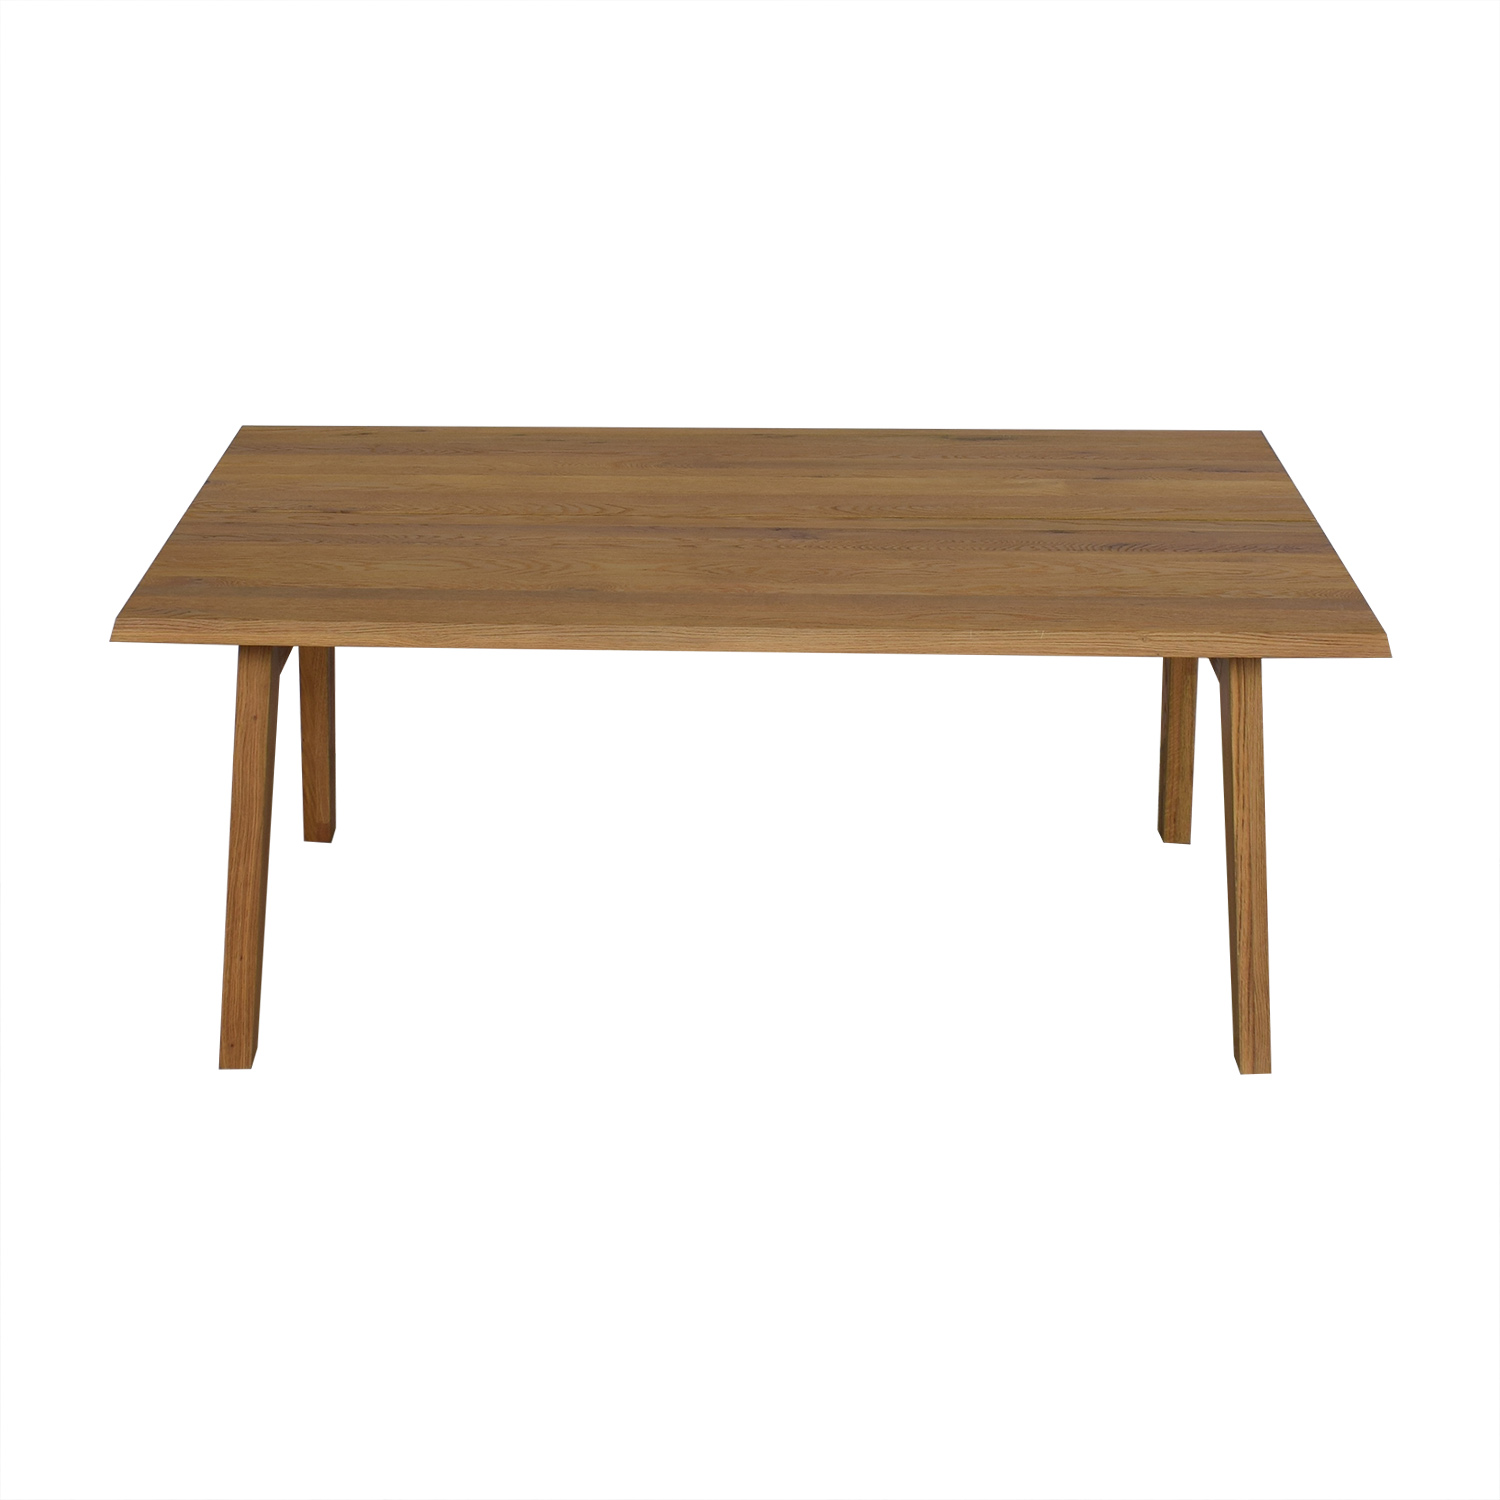 Article Article Madera Dining Table dimensions